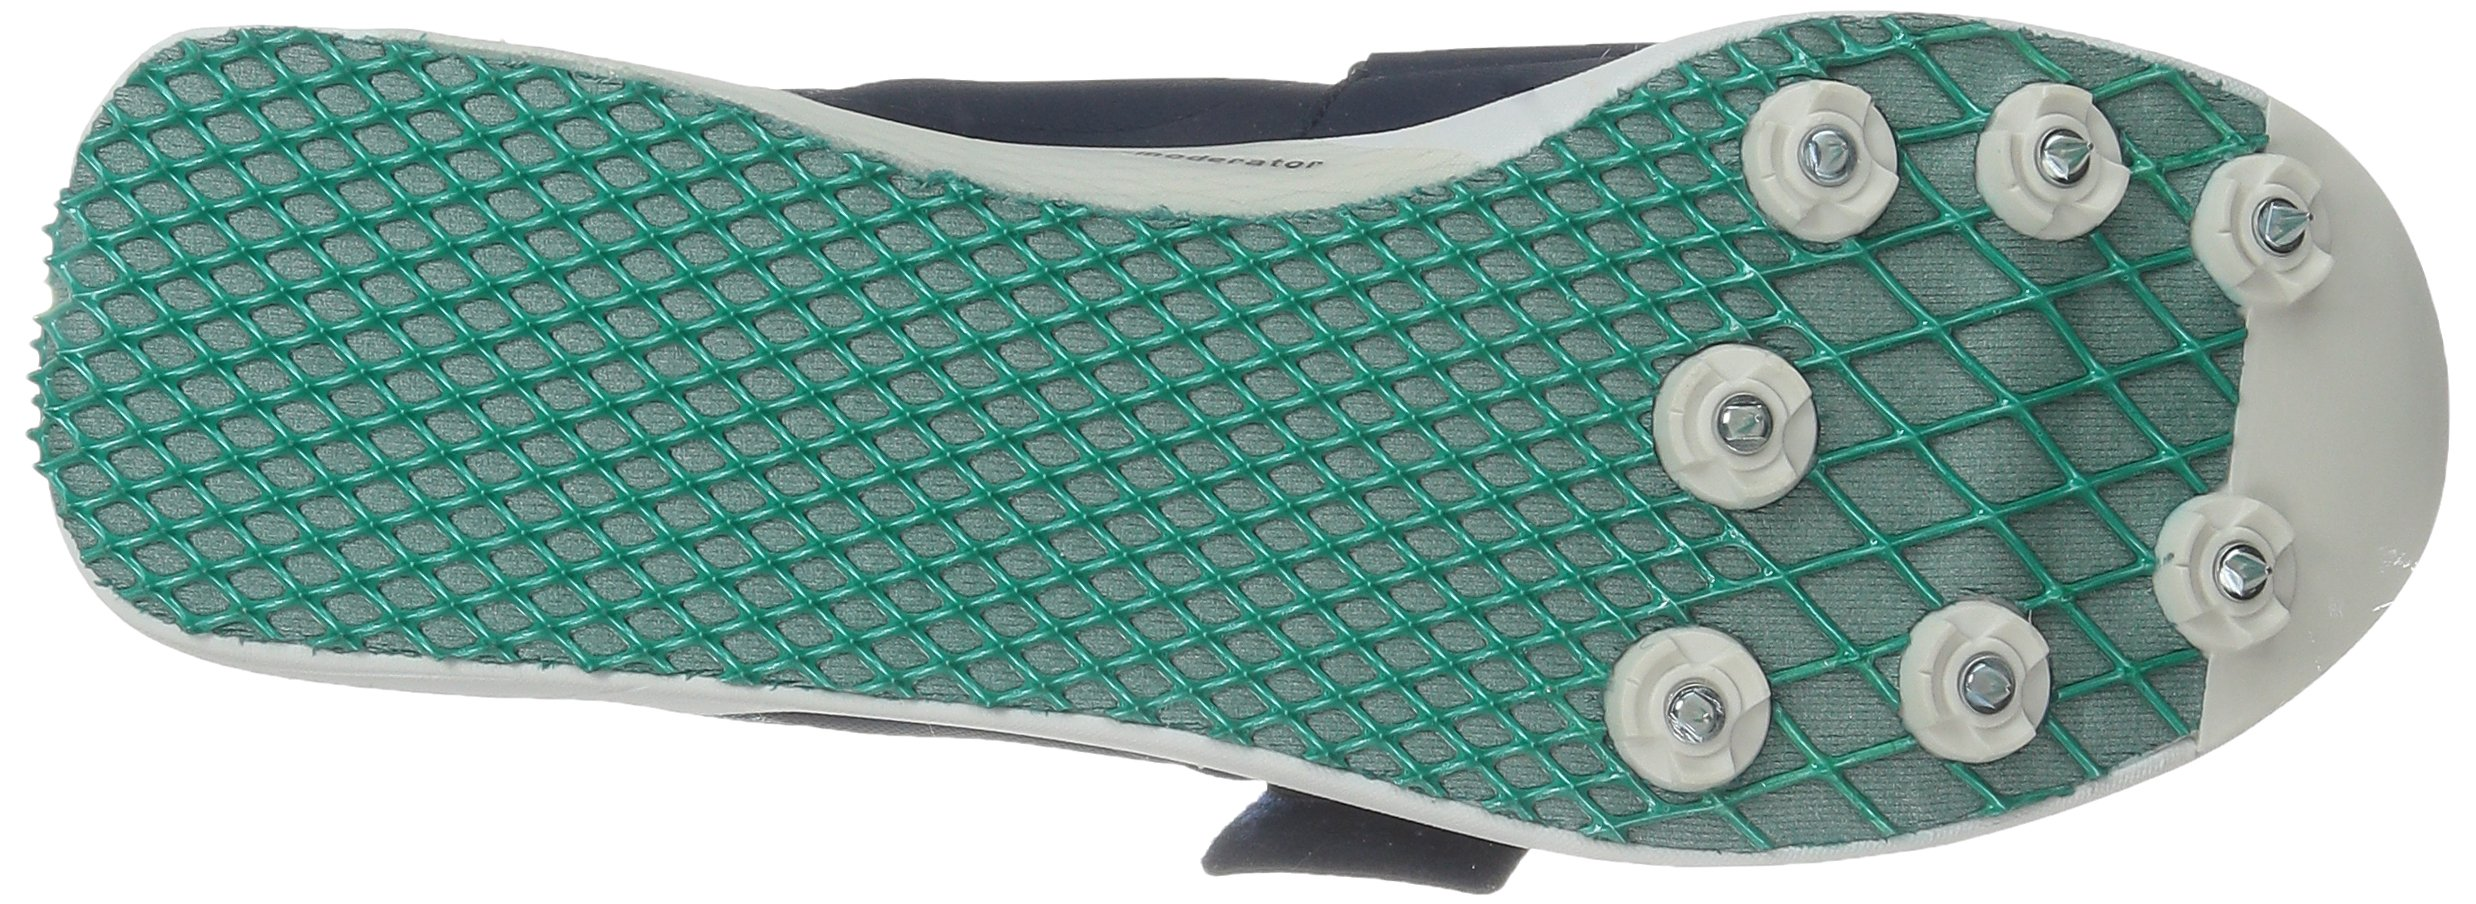 adidas Performance Women's Adizero TJ/PV Running Shoe with Spikes,Collegiate Navy/White/Green,15 M US by adidas (Image #3)